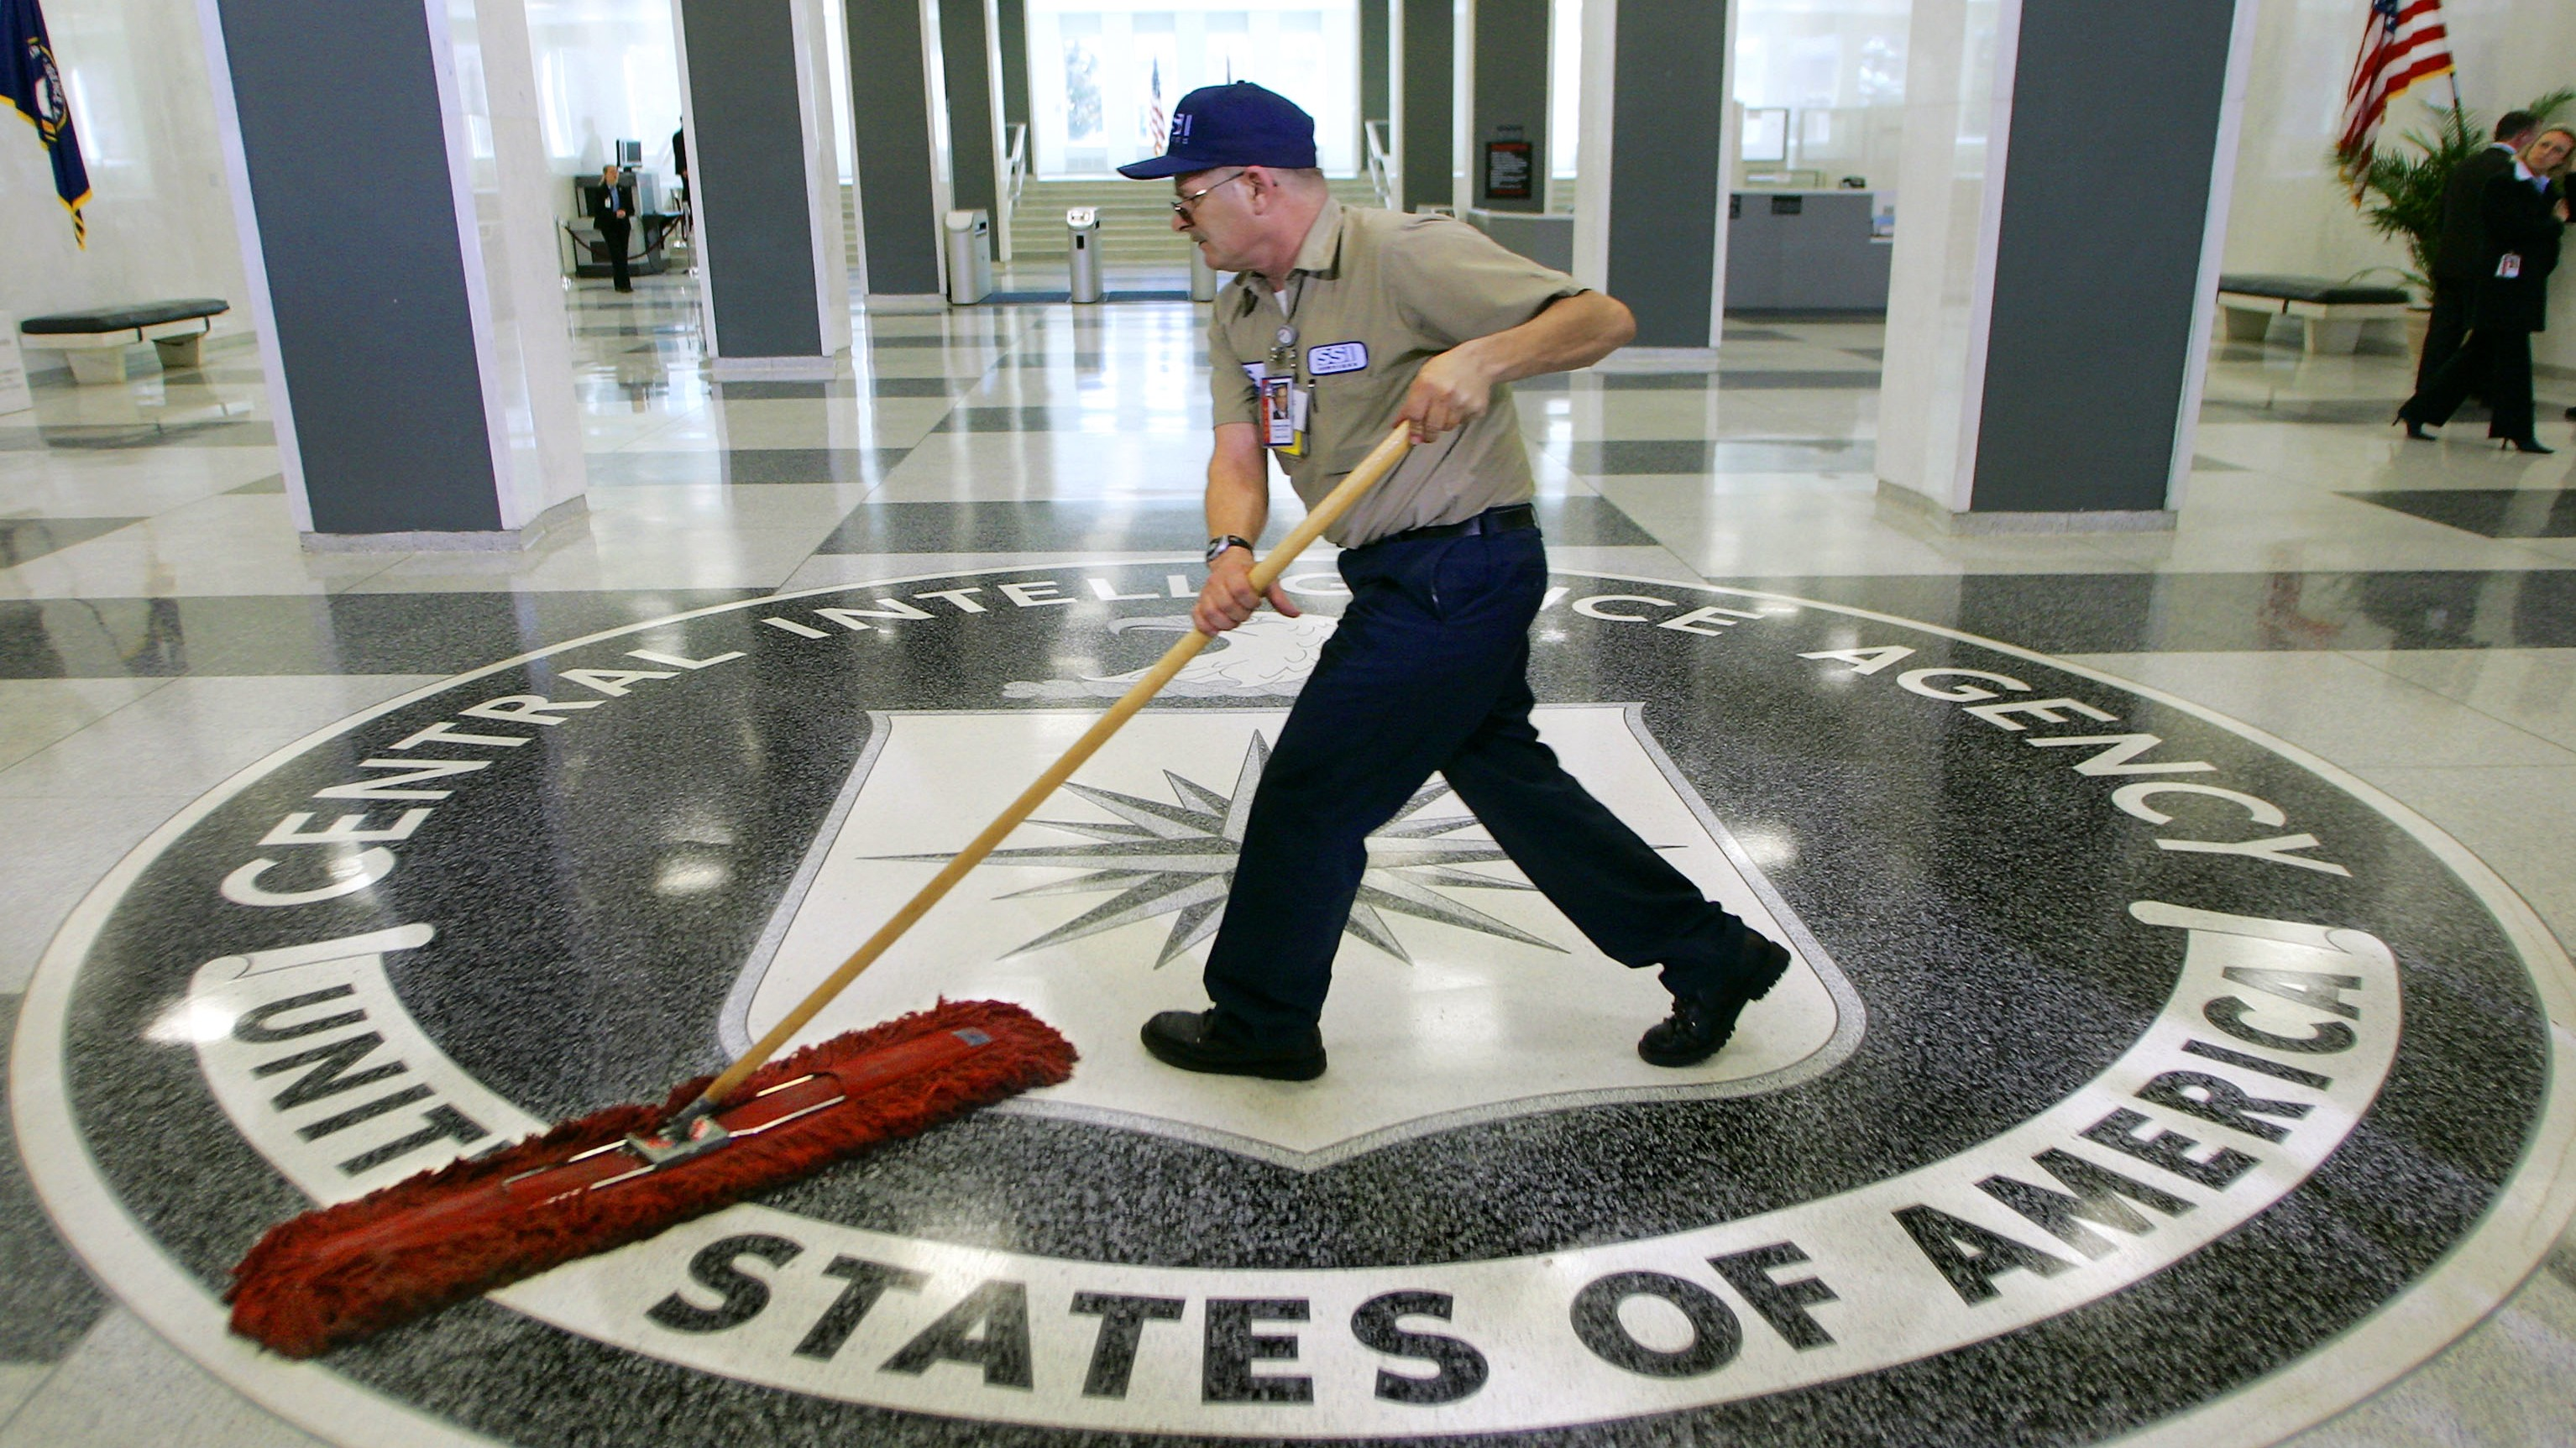 Fresh Suspicions Are Raised That UK 'Lobbied' to Keep Its Name Out of CIA Torture Report